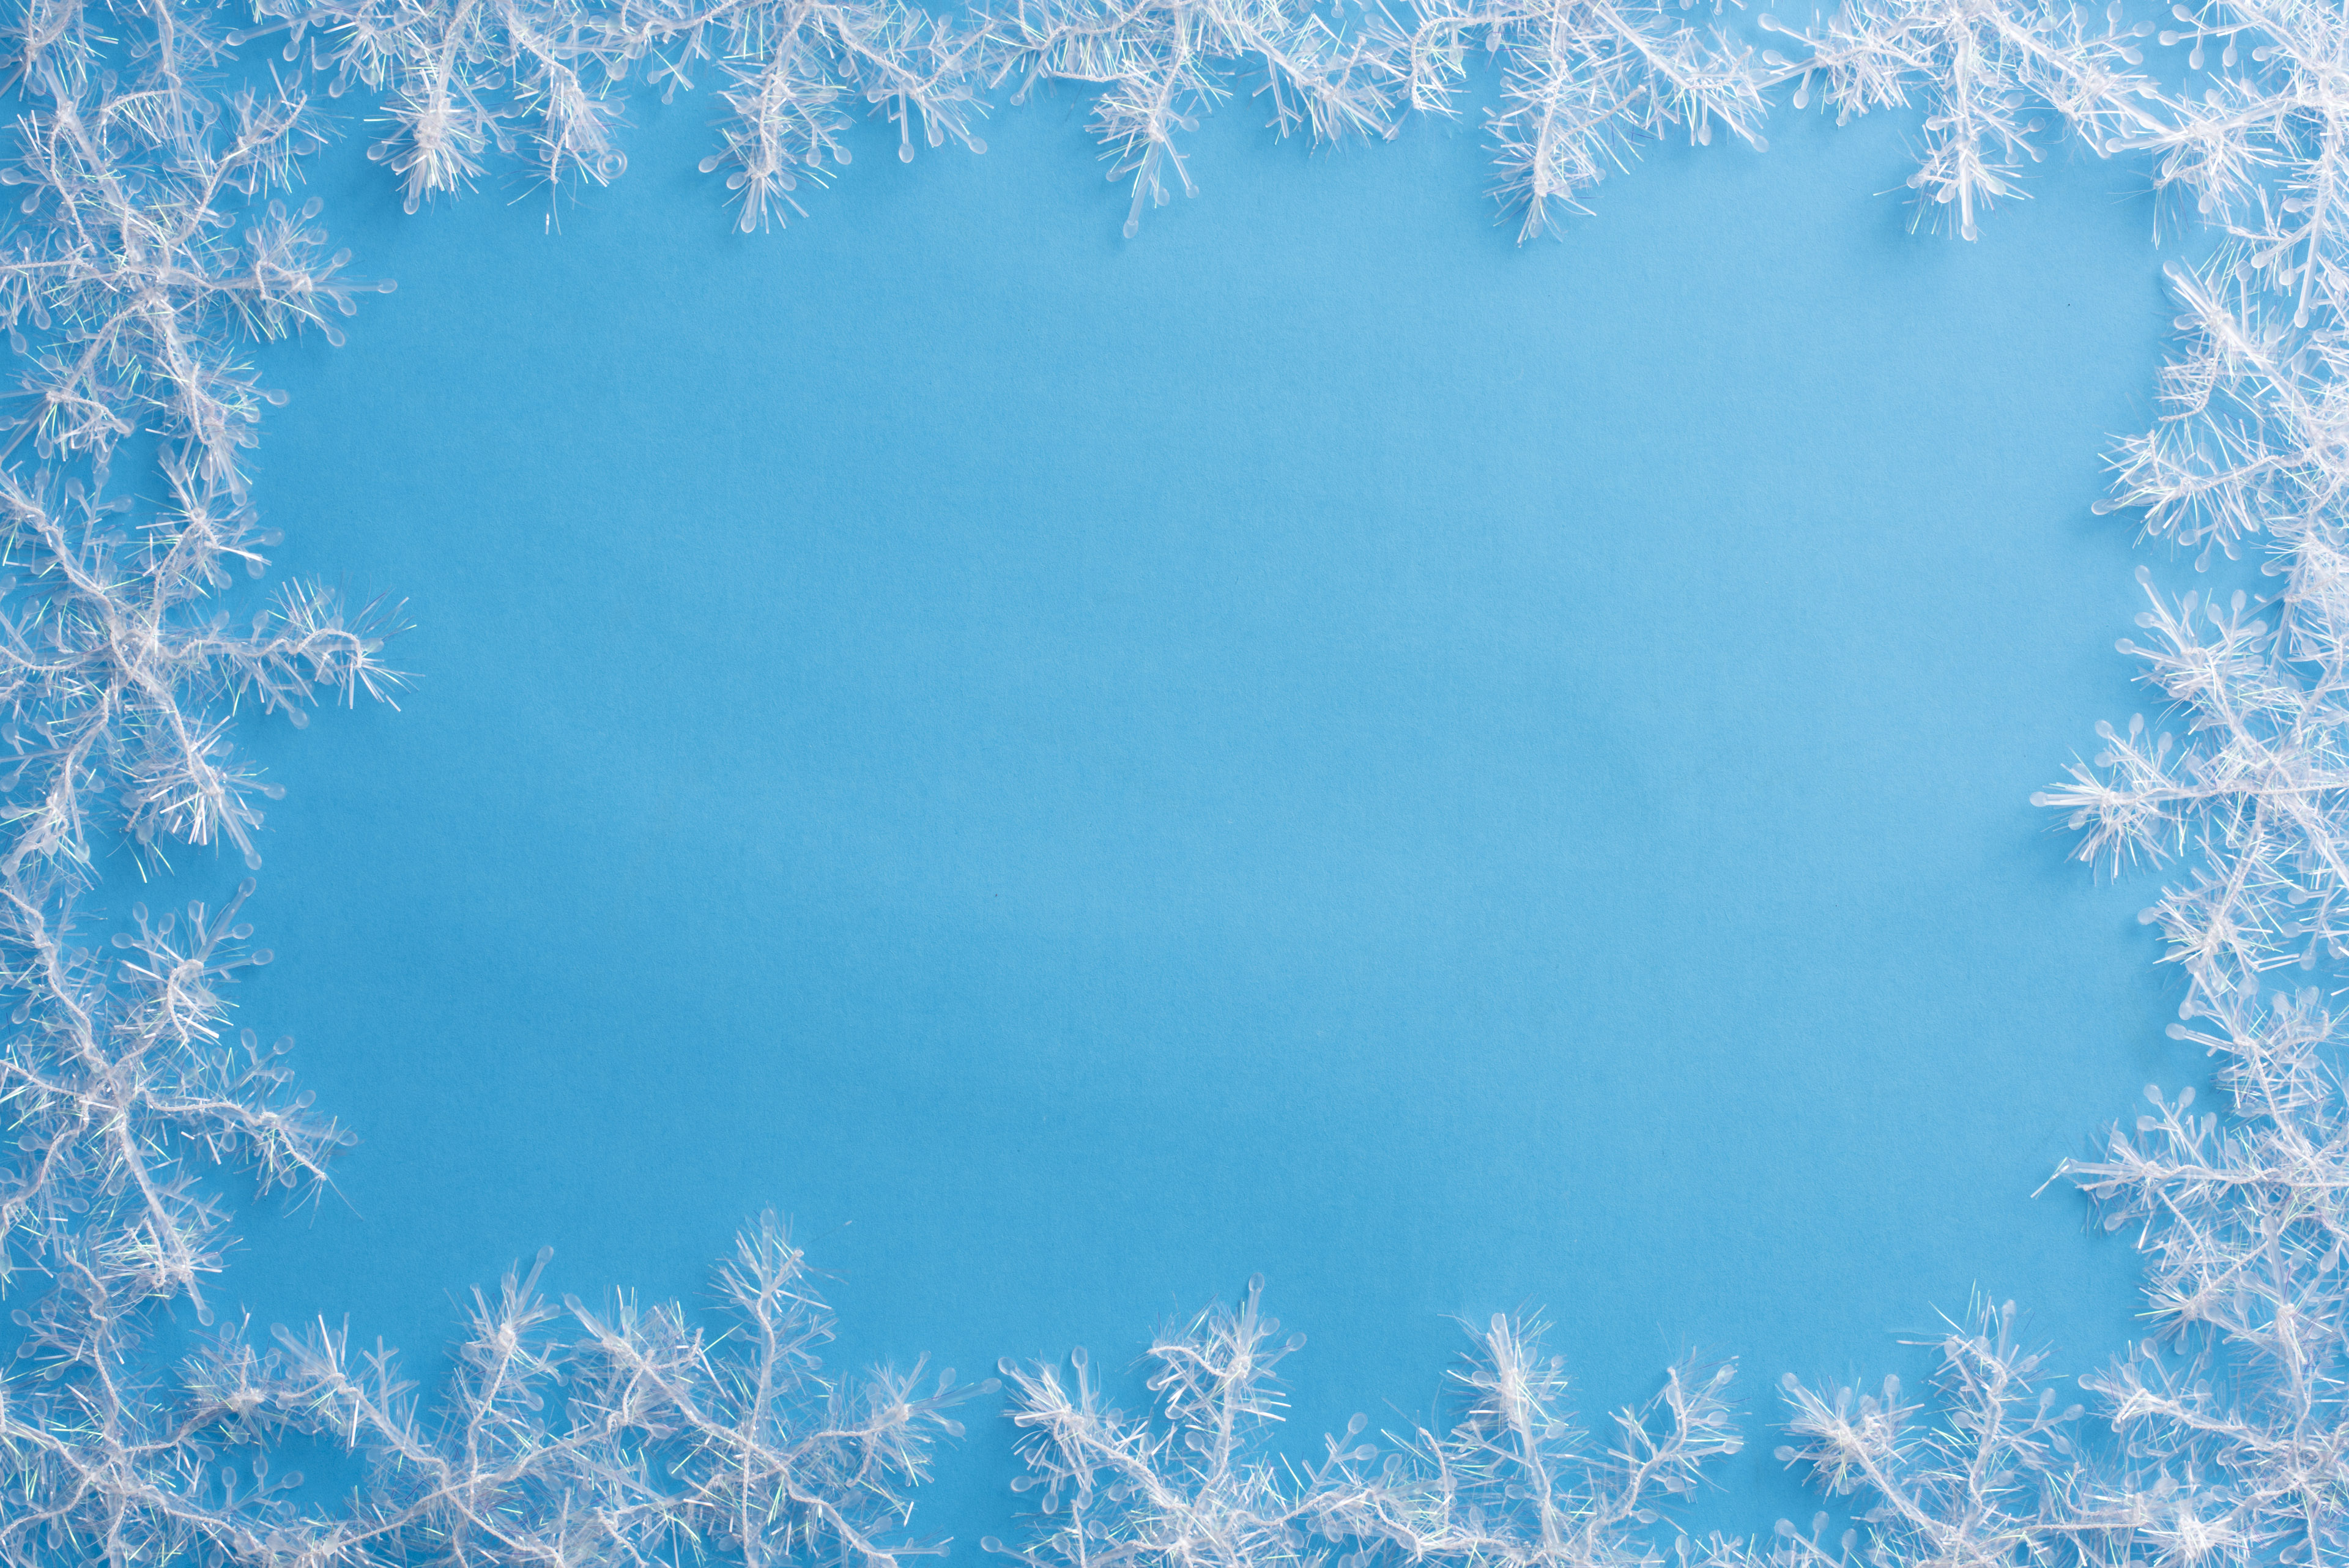 A white winter, snowflake edged, rectangular frame isolated on a plain blue background with copy space.